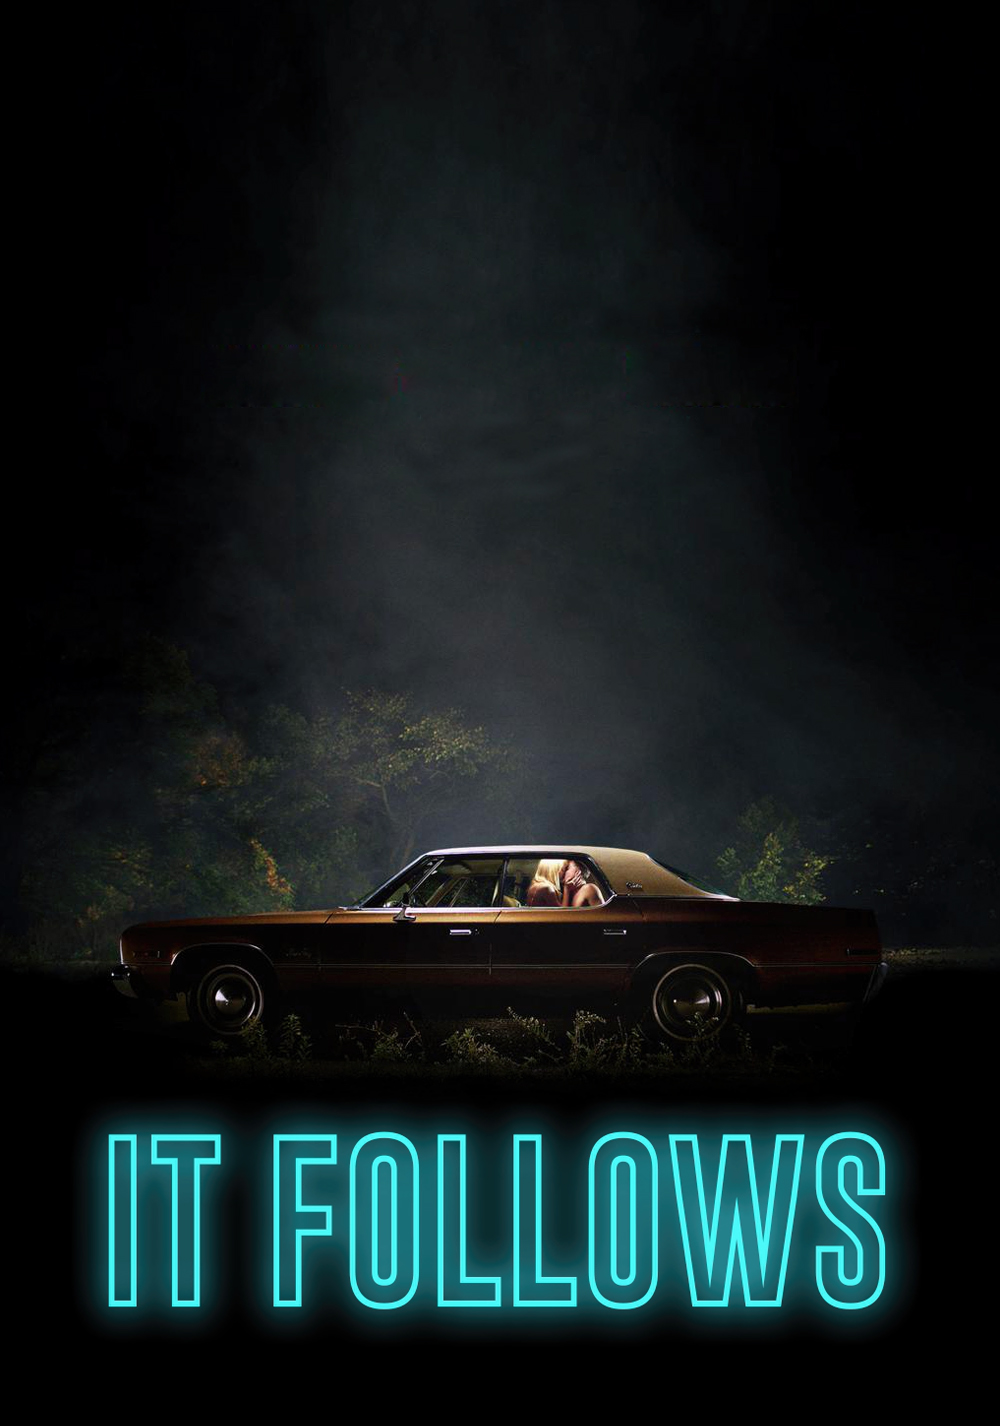 High Resolution Wallpaper | It Follows 1000x1426 px